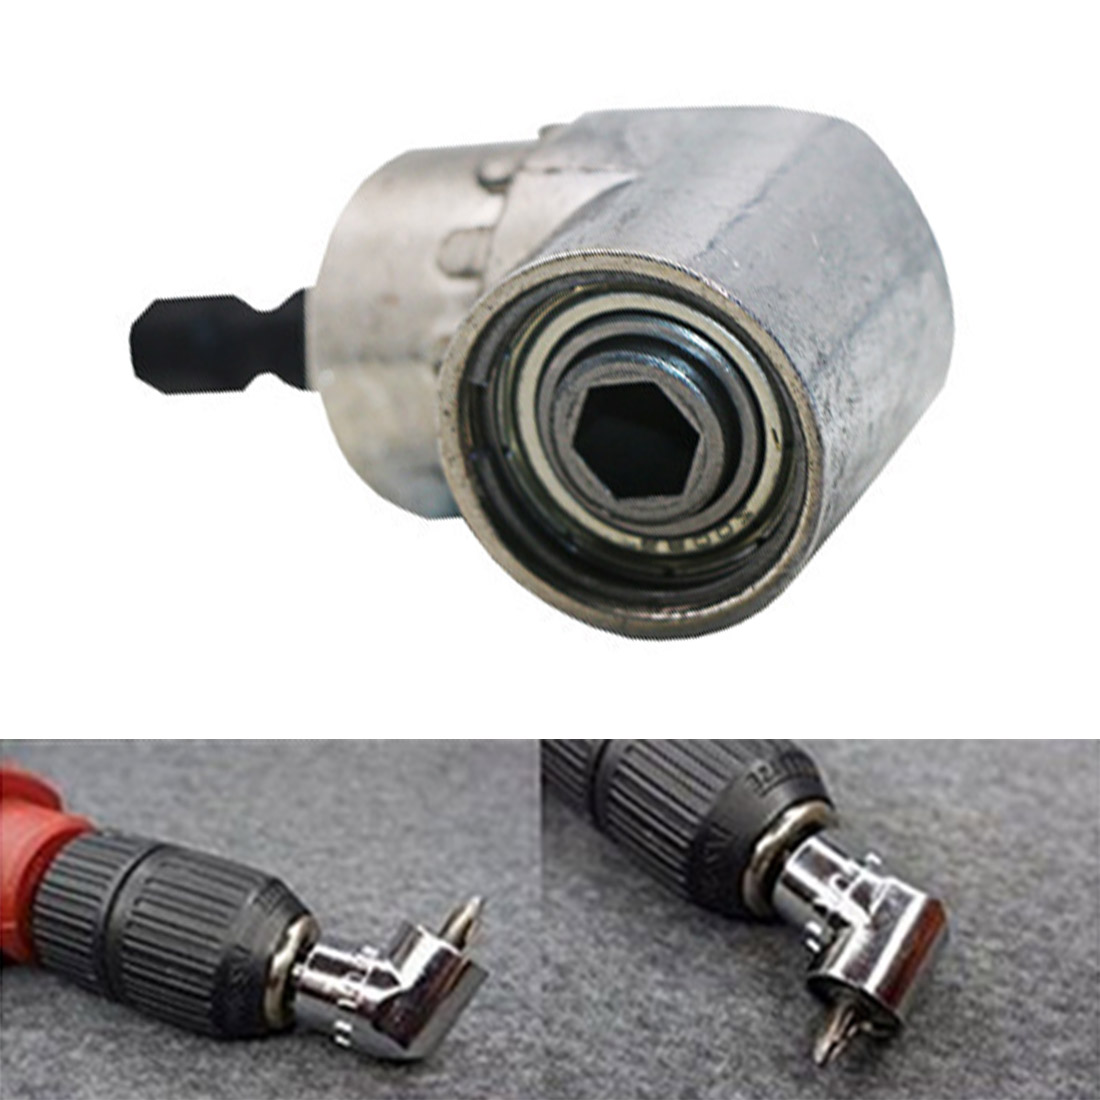 Angle Screw Driver Socket Holder Adapter Adjustable Bits Nozzles For Screwdriver Bit Right Angle Head Screwdriver